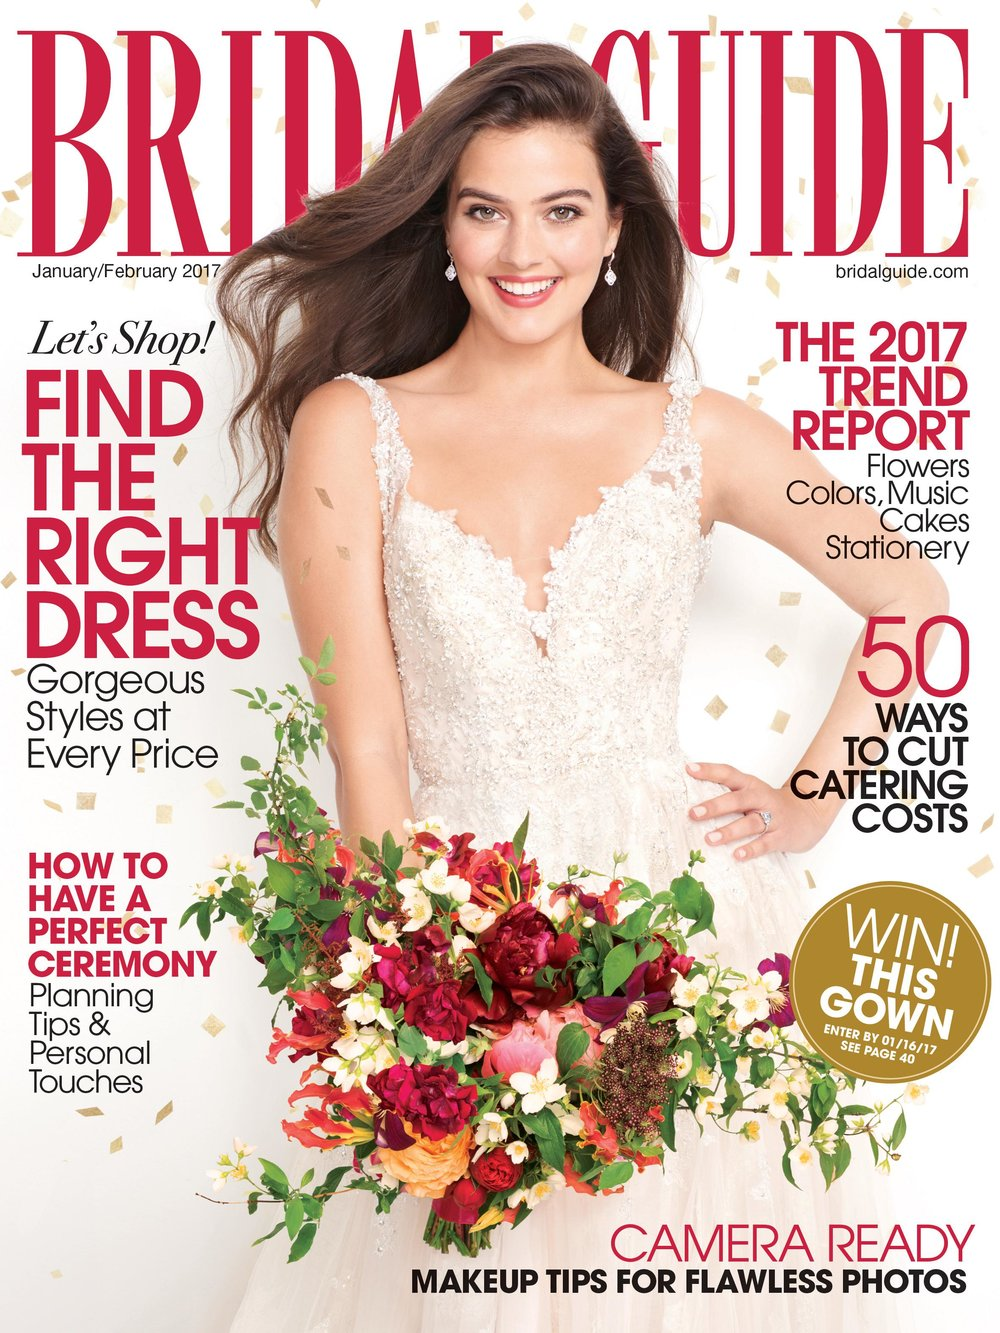 2017 Wedding Trends | Bridal Guide Magazine | Michelle Leo Events | Utah Event Planner and Designer